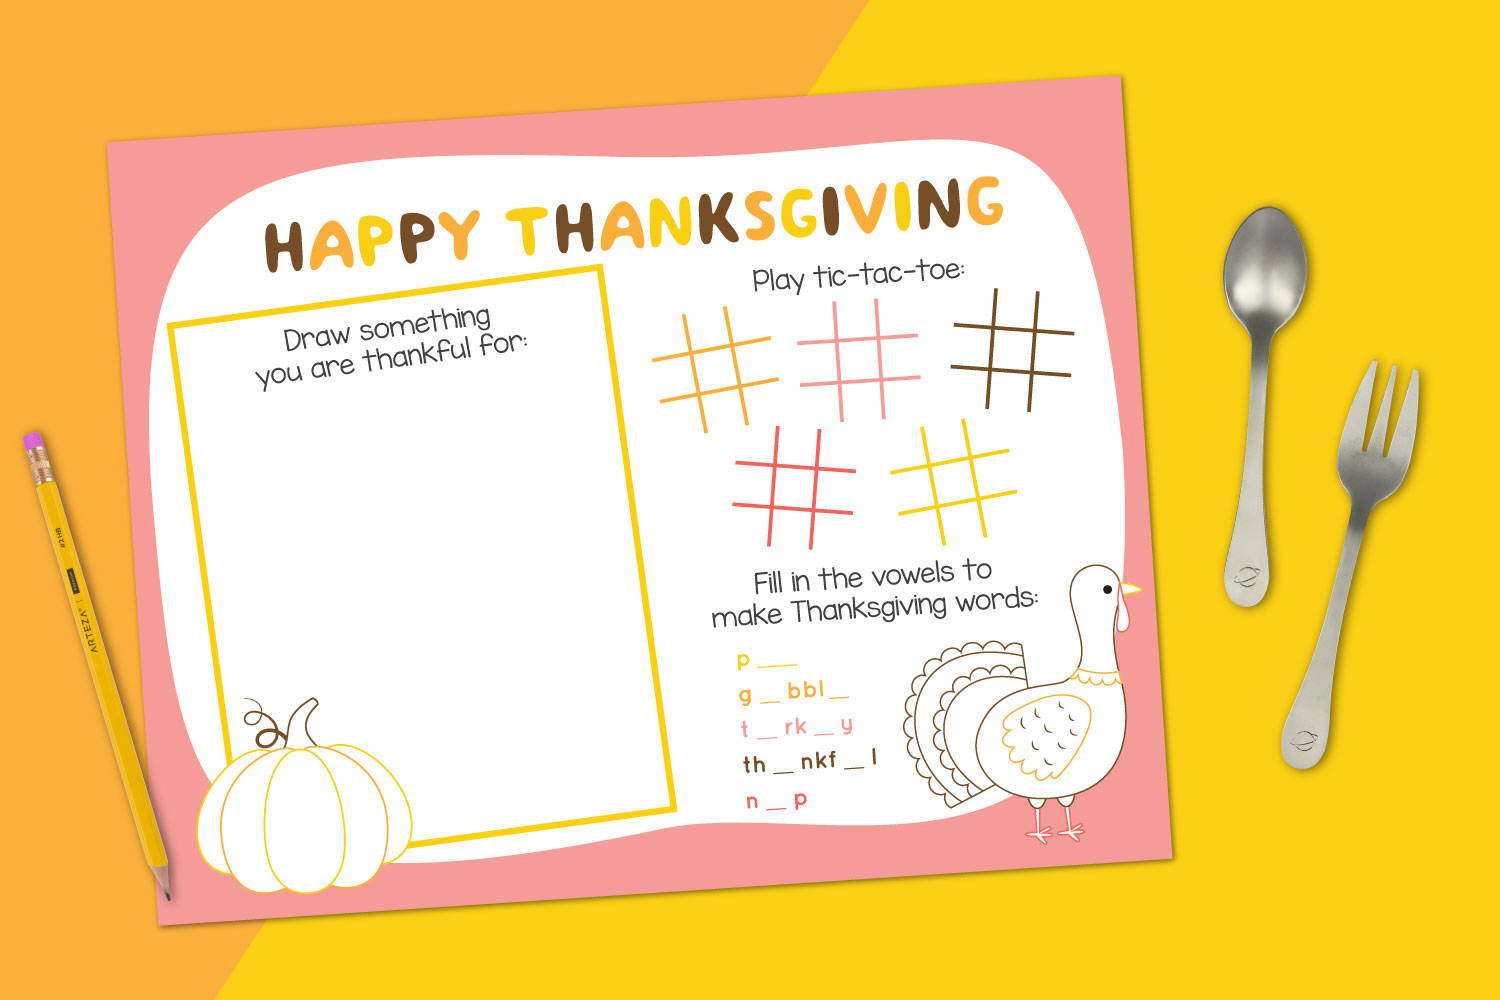 Printable Thanksgiving Placemat mockup